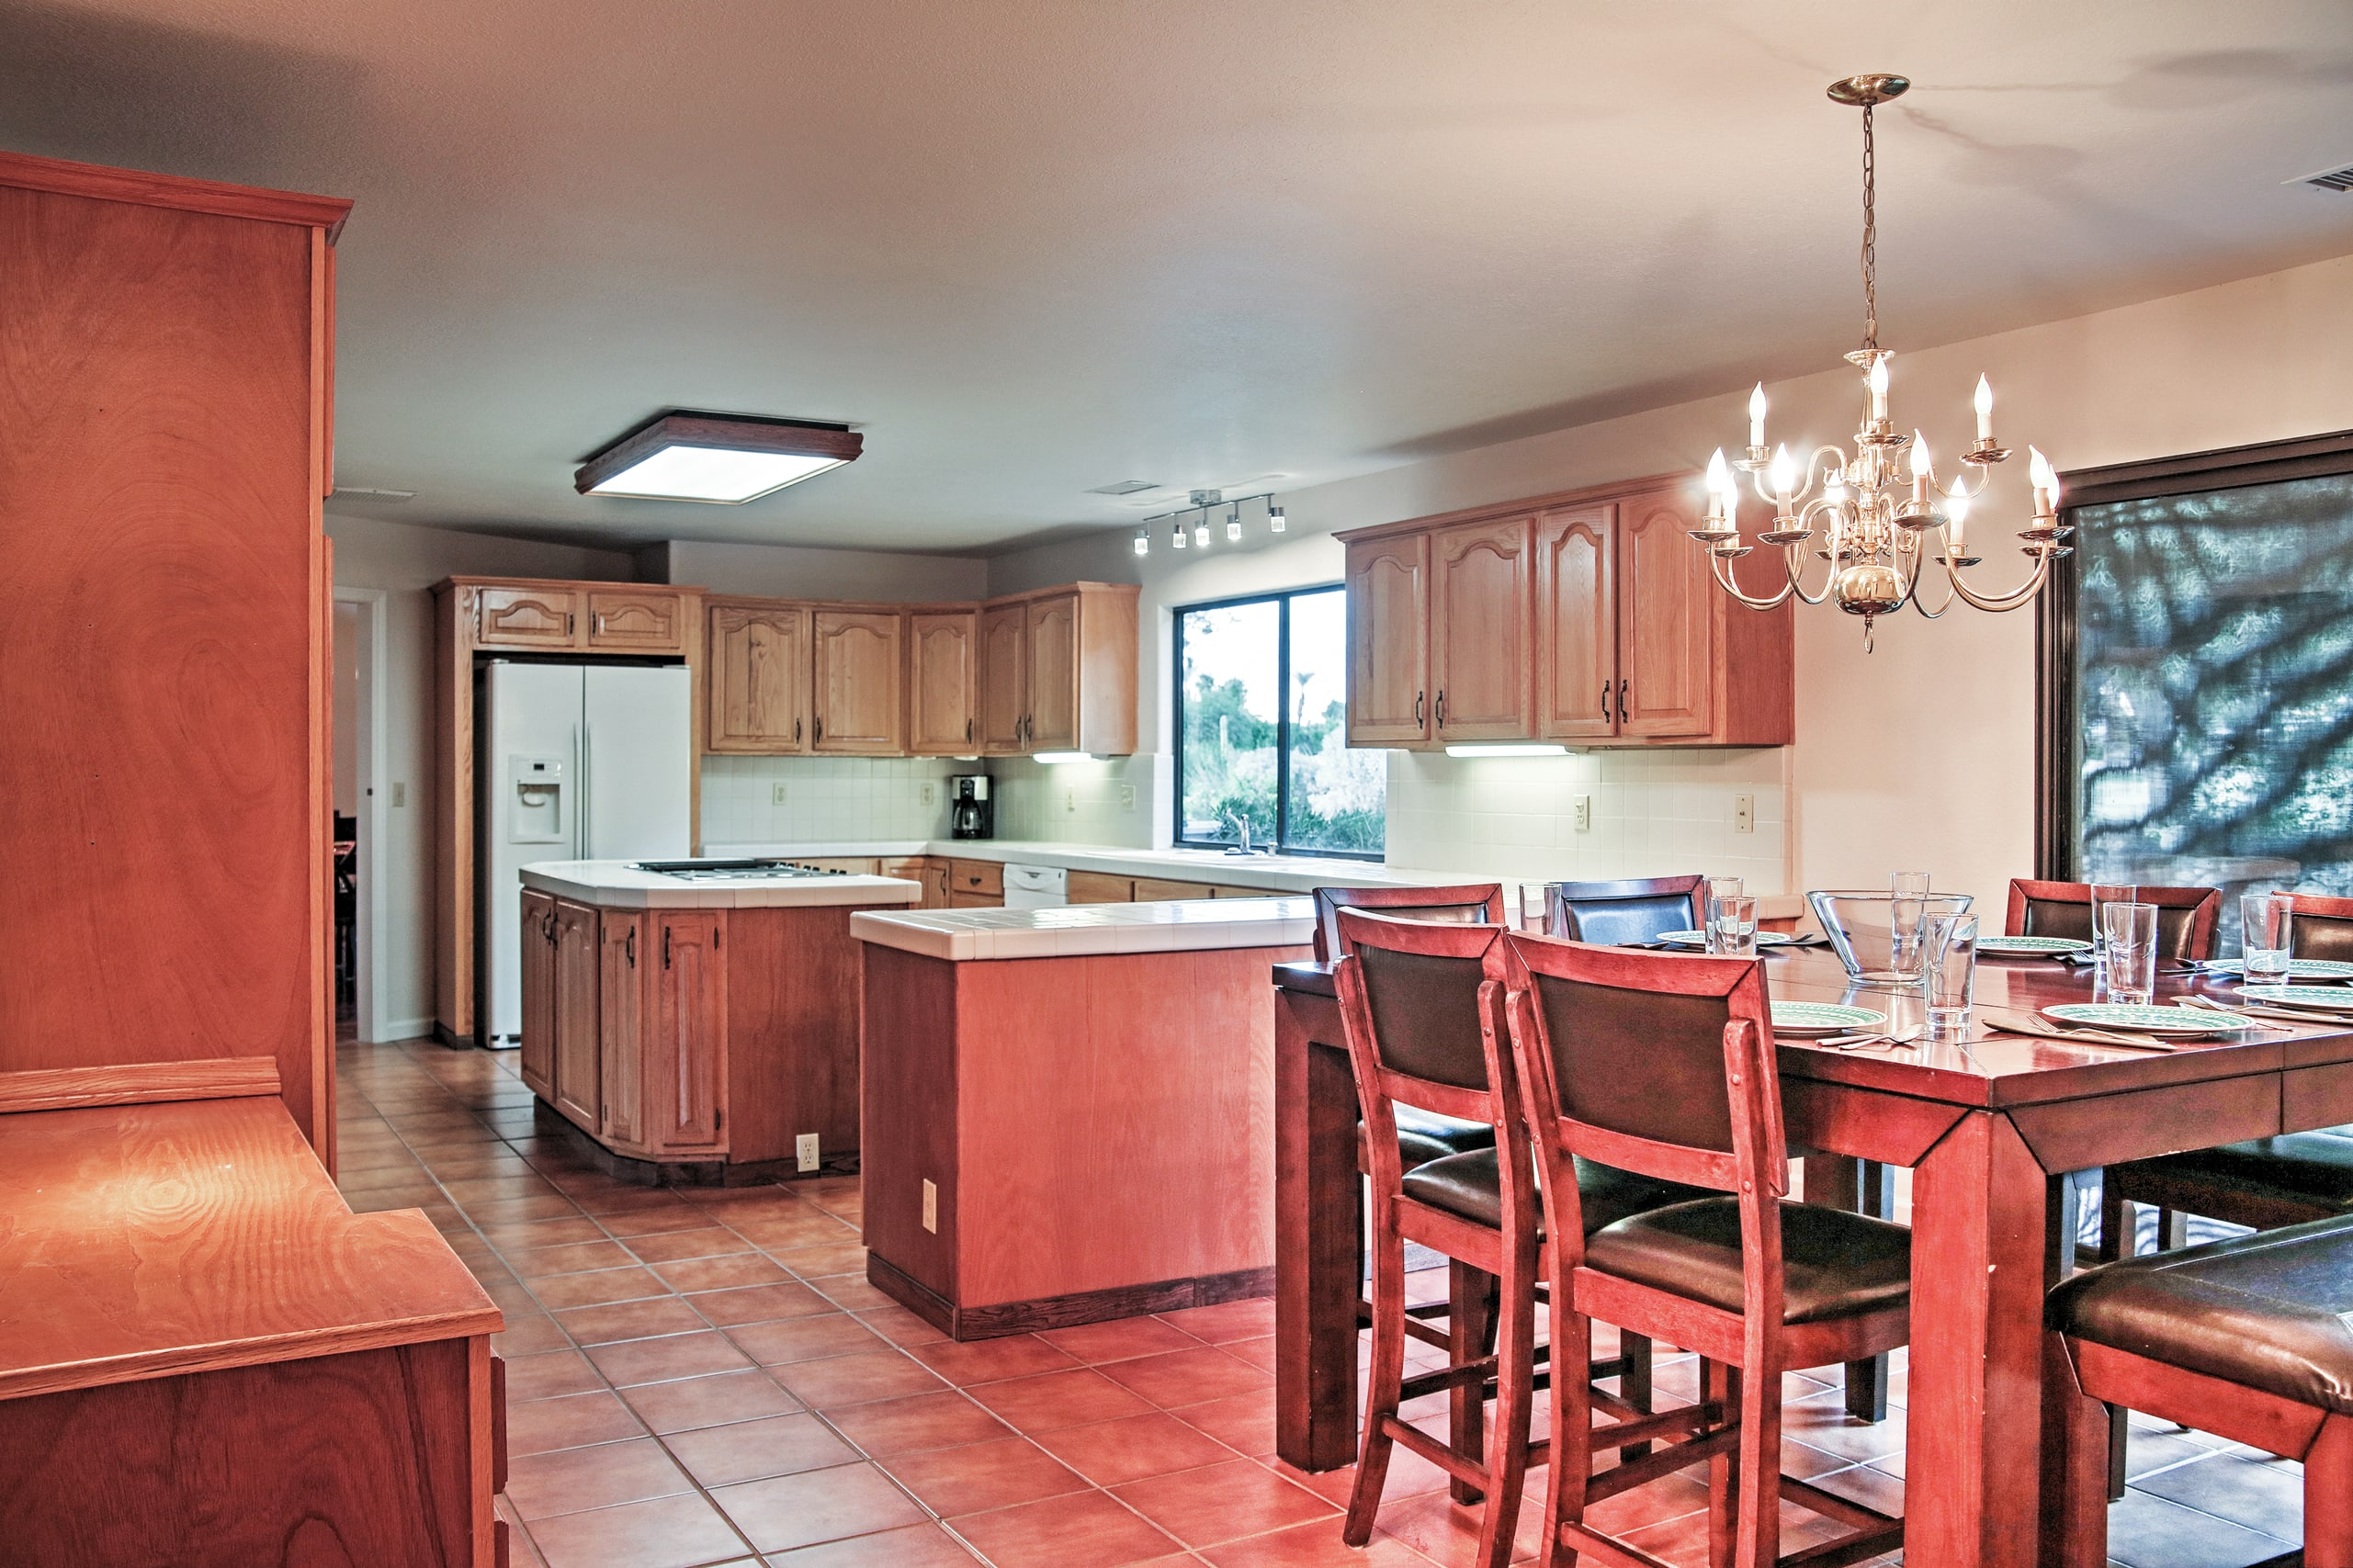 The dining area flows right into the kitchen.